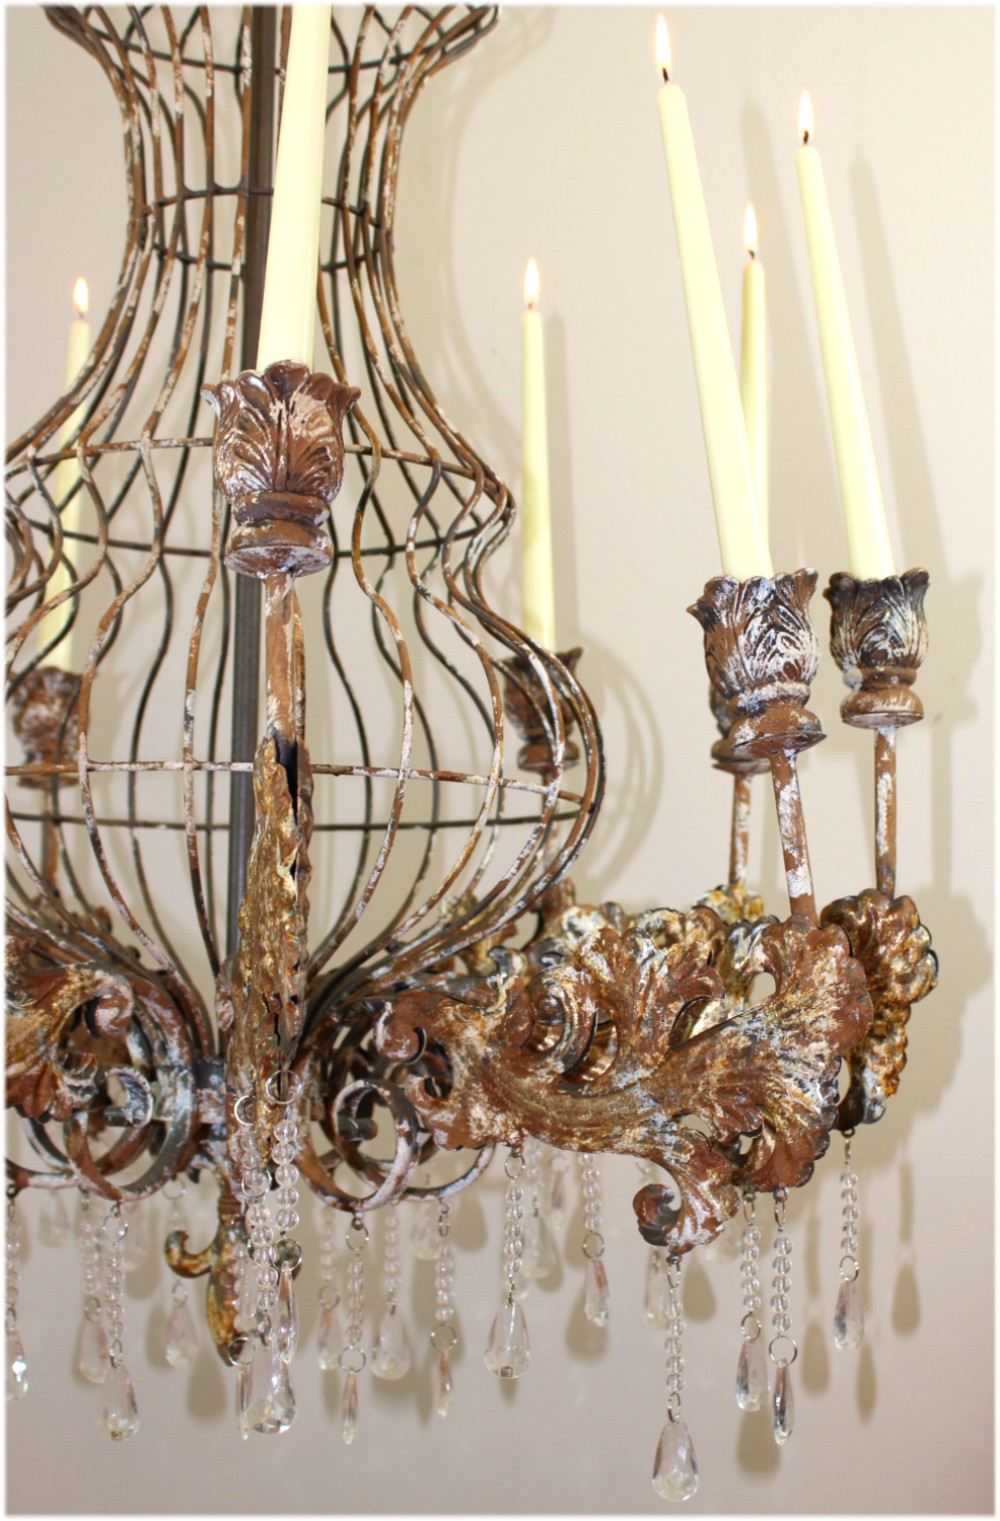 Huge Big Candle Rustic Tin Chandelier w Crystals for Home or Movie Studio Prop Old Finish